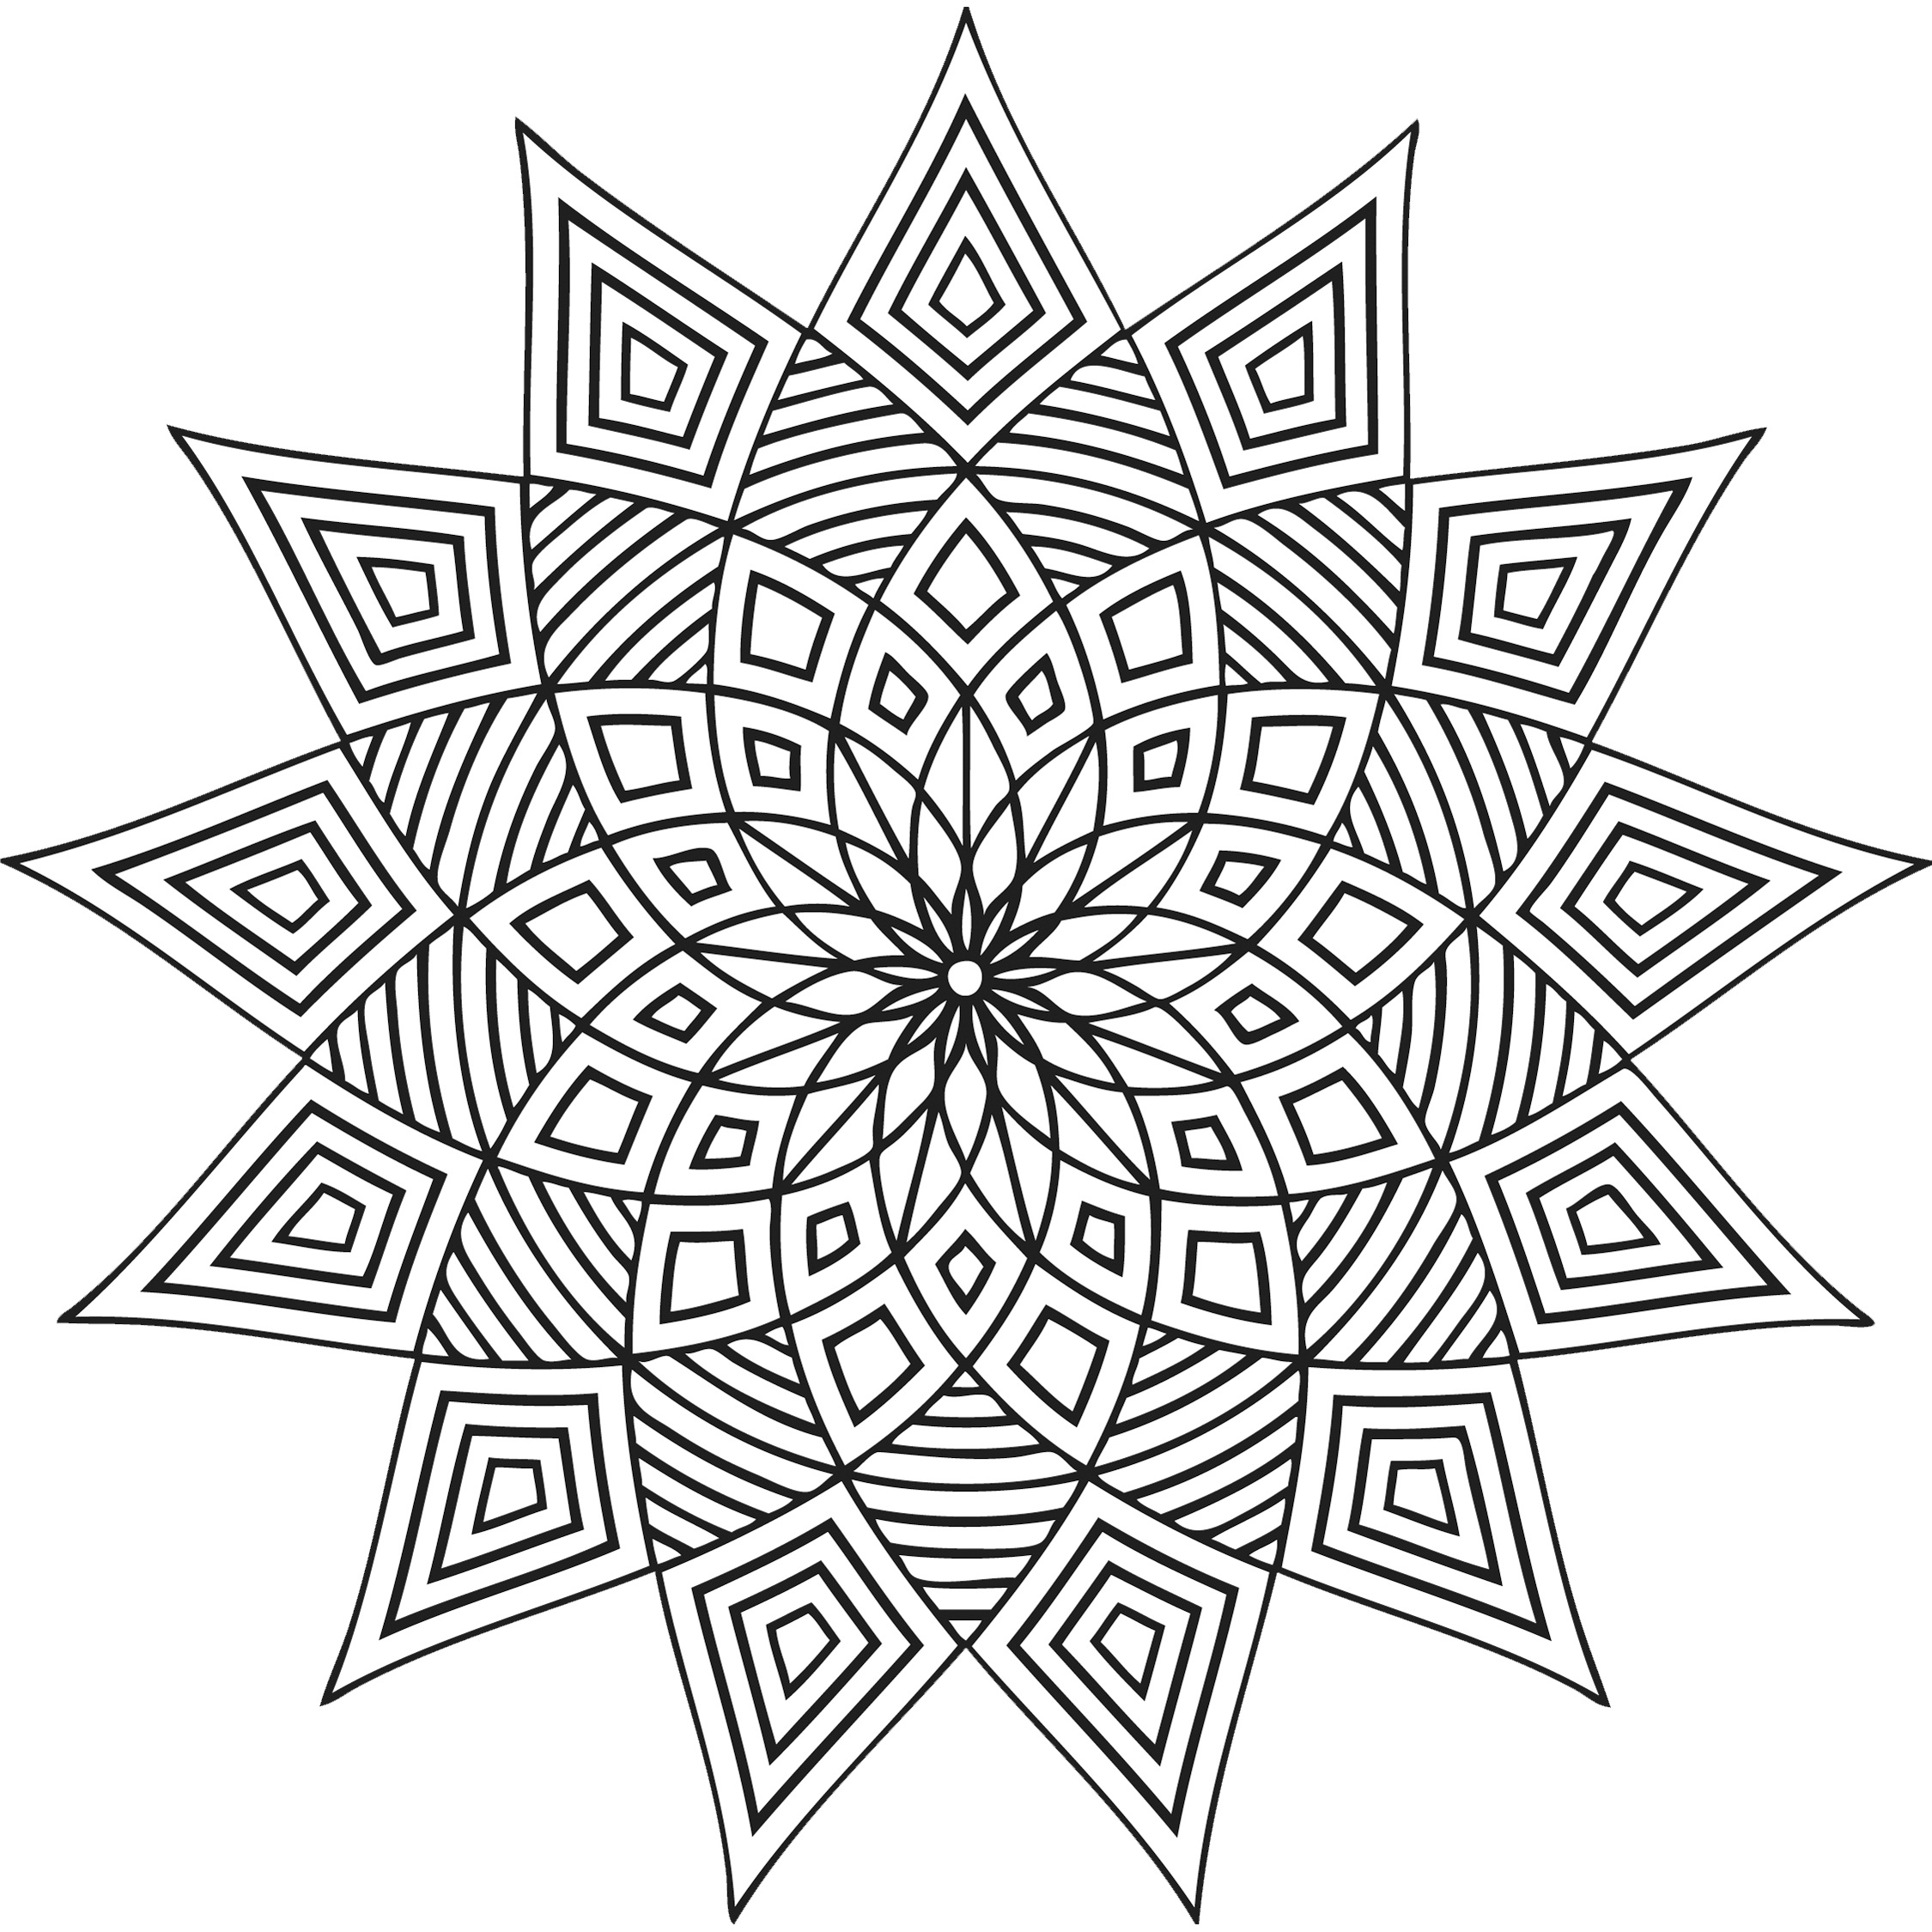 printable pattern coloring pages get this free printable art deco patterns coloring pages pages printable pattern coloring